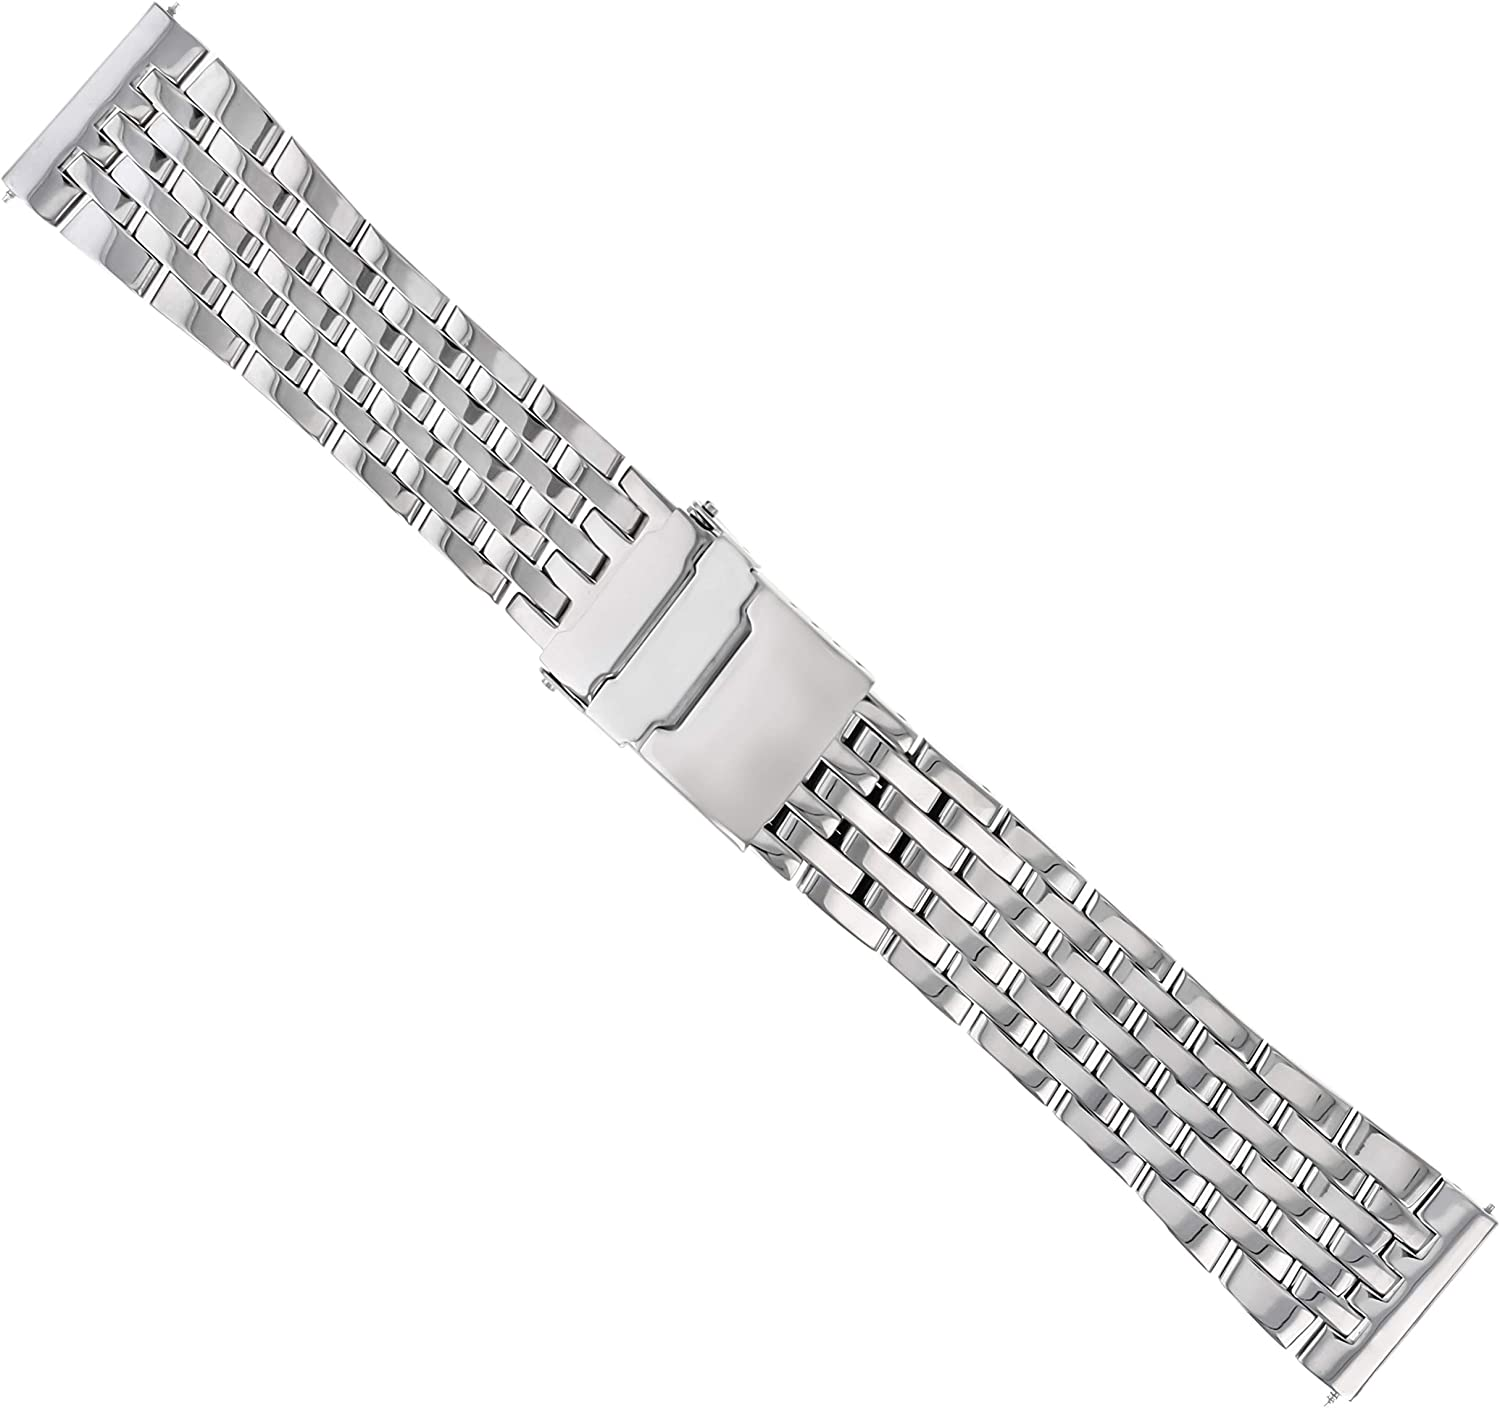 22mm Watch Band Bracelet Compatible with Breitling Navitimer A13322 7 Link Stainless S Shiny